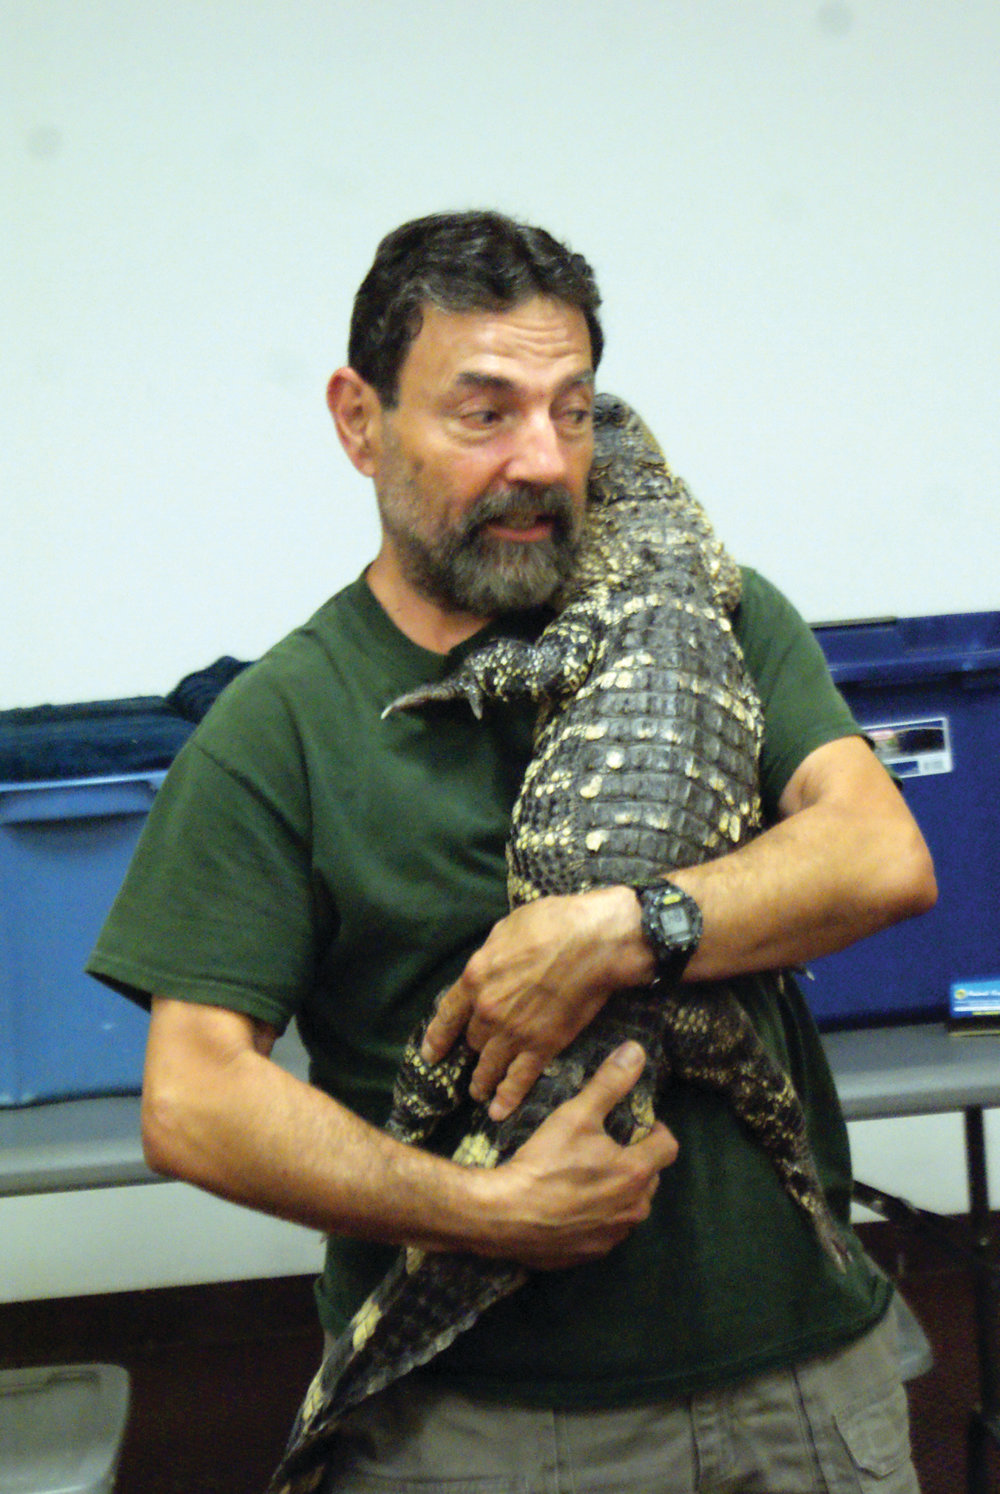 MEET DAVE: Dave Marchetti from Dave Marchetti's Animal Experience brought his show to the Central Library on July 22.